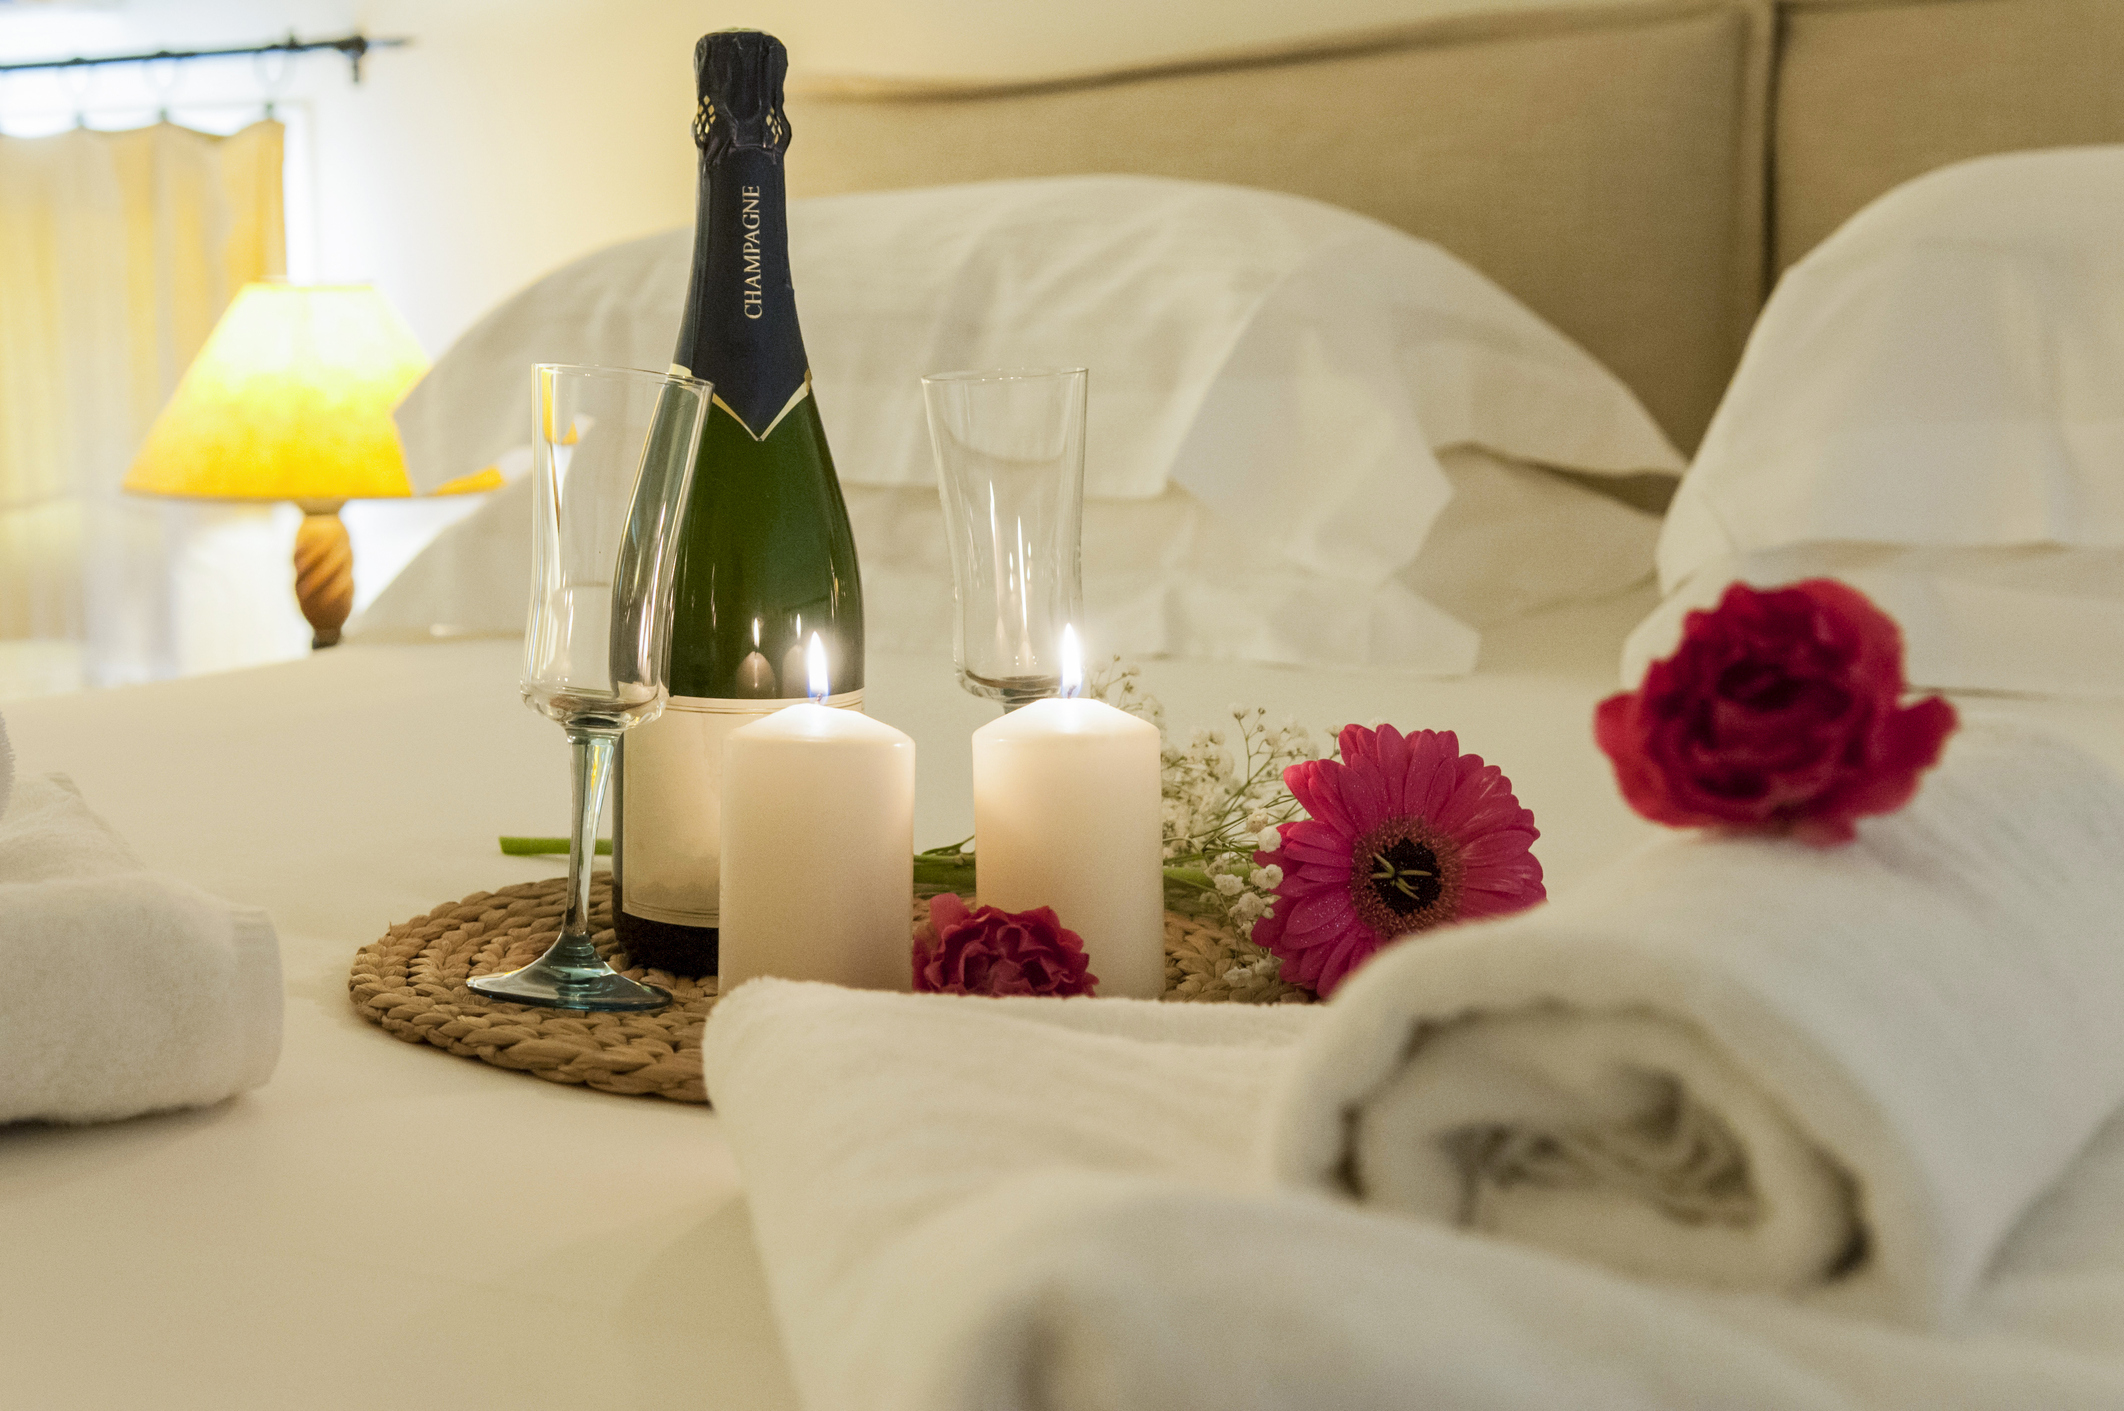 Japan's Love Hotels: 10 Hotels To Suit Every Taste - Champagne bottle, candles, flowers on a bed in a hotel room